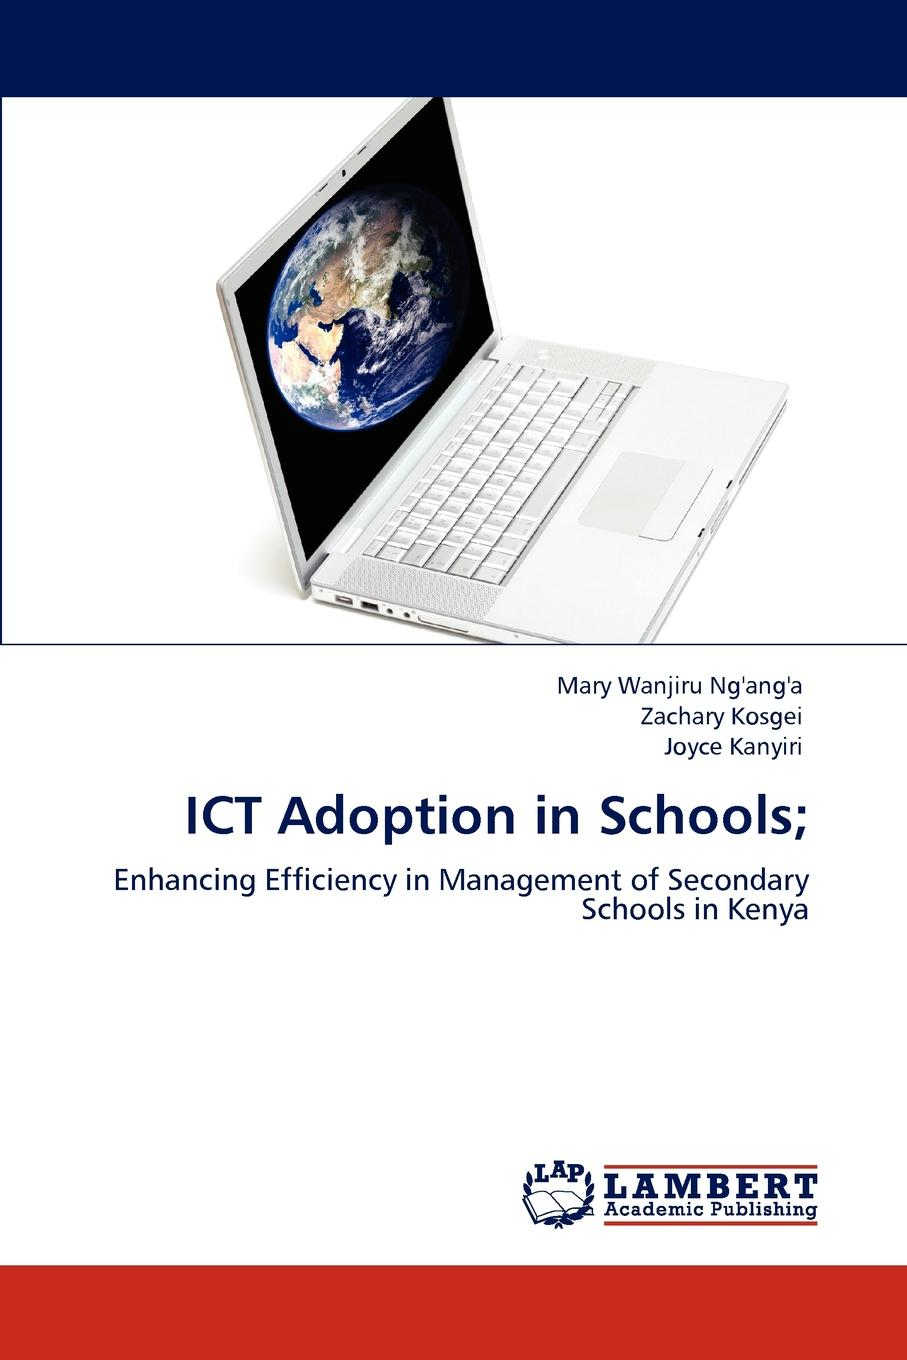 Mary Wanjiru Ng'ang'a, Zachary Kosgei, Joyce Kanyiri Ict Adoption in Schools; ayoub kafyulilo practical use of ict in science and mathematics teachers training at duce